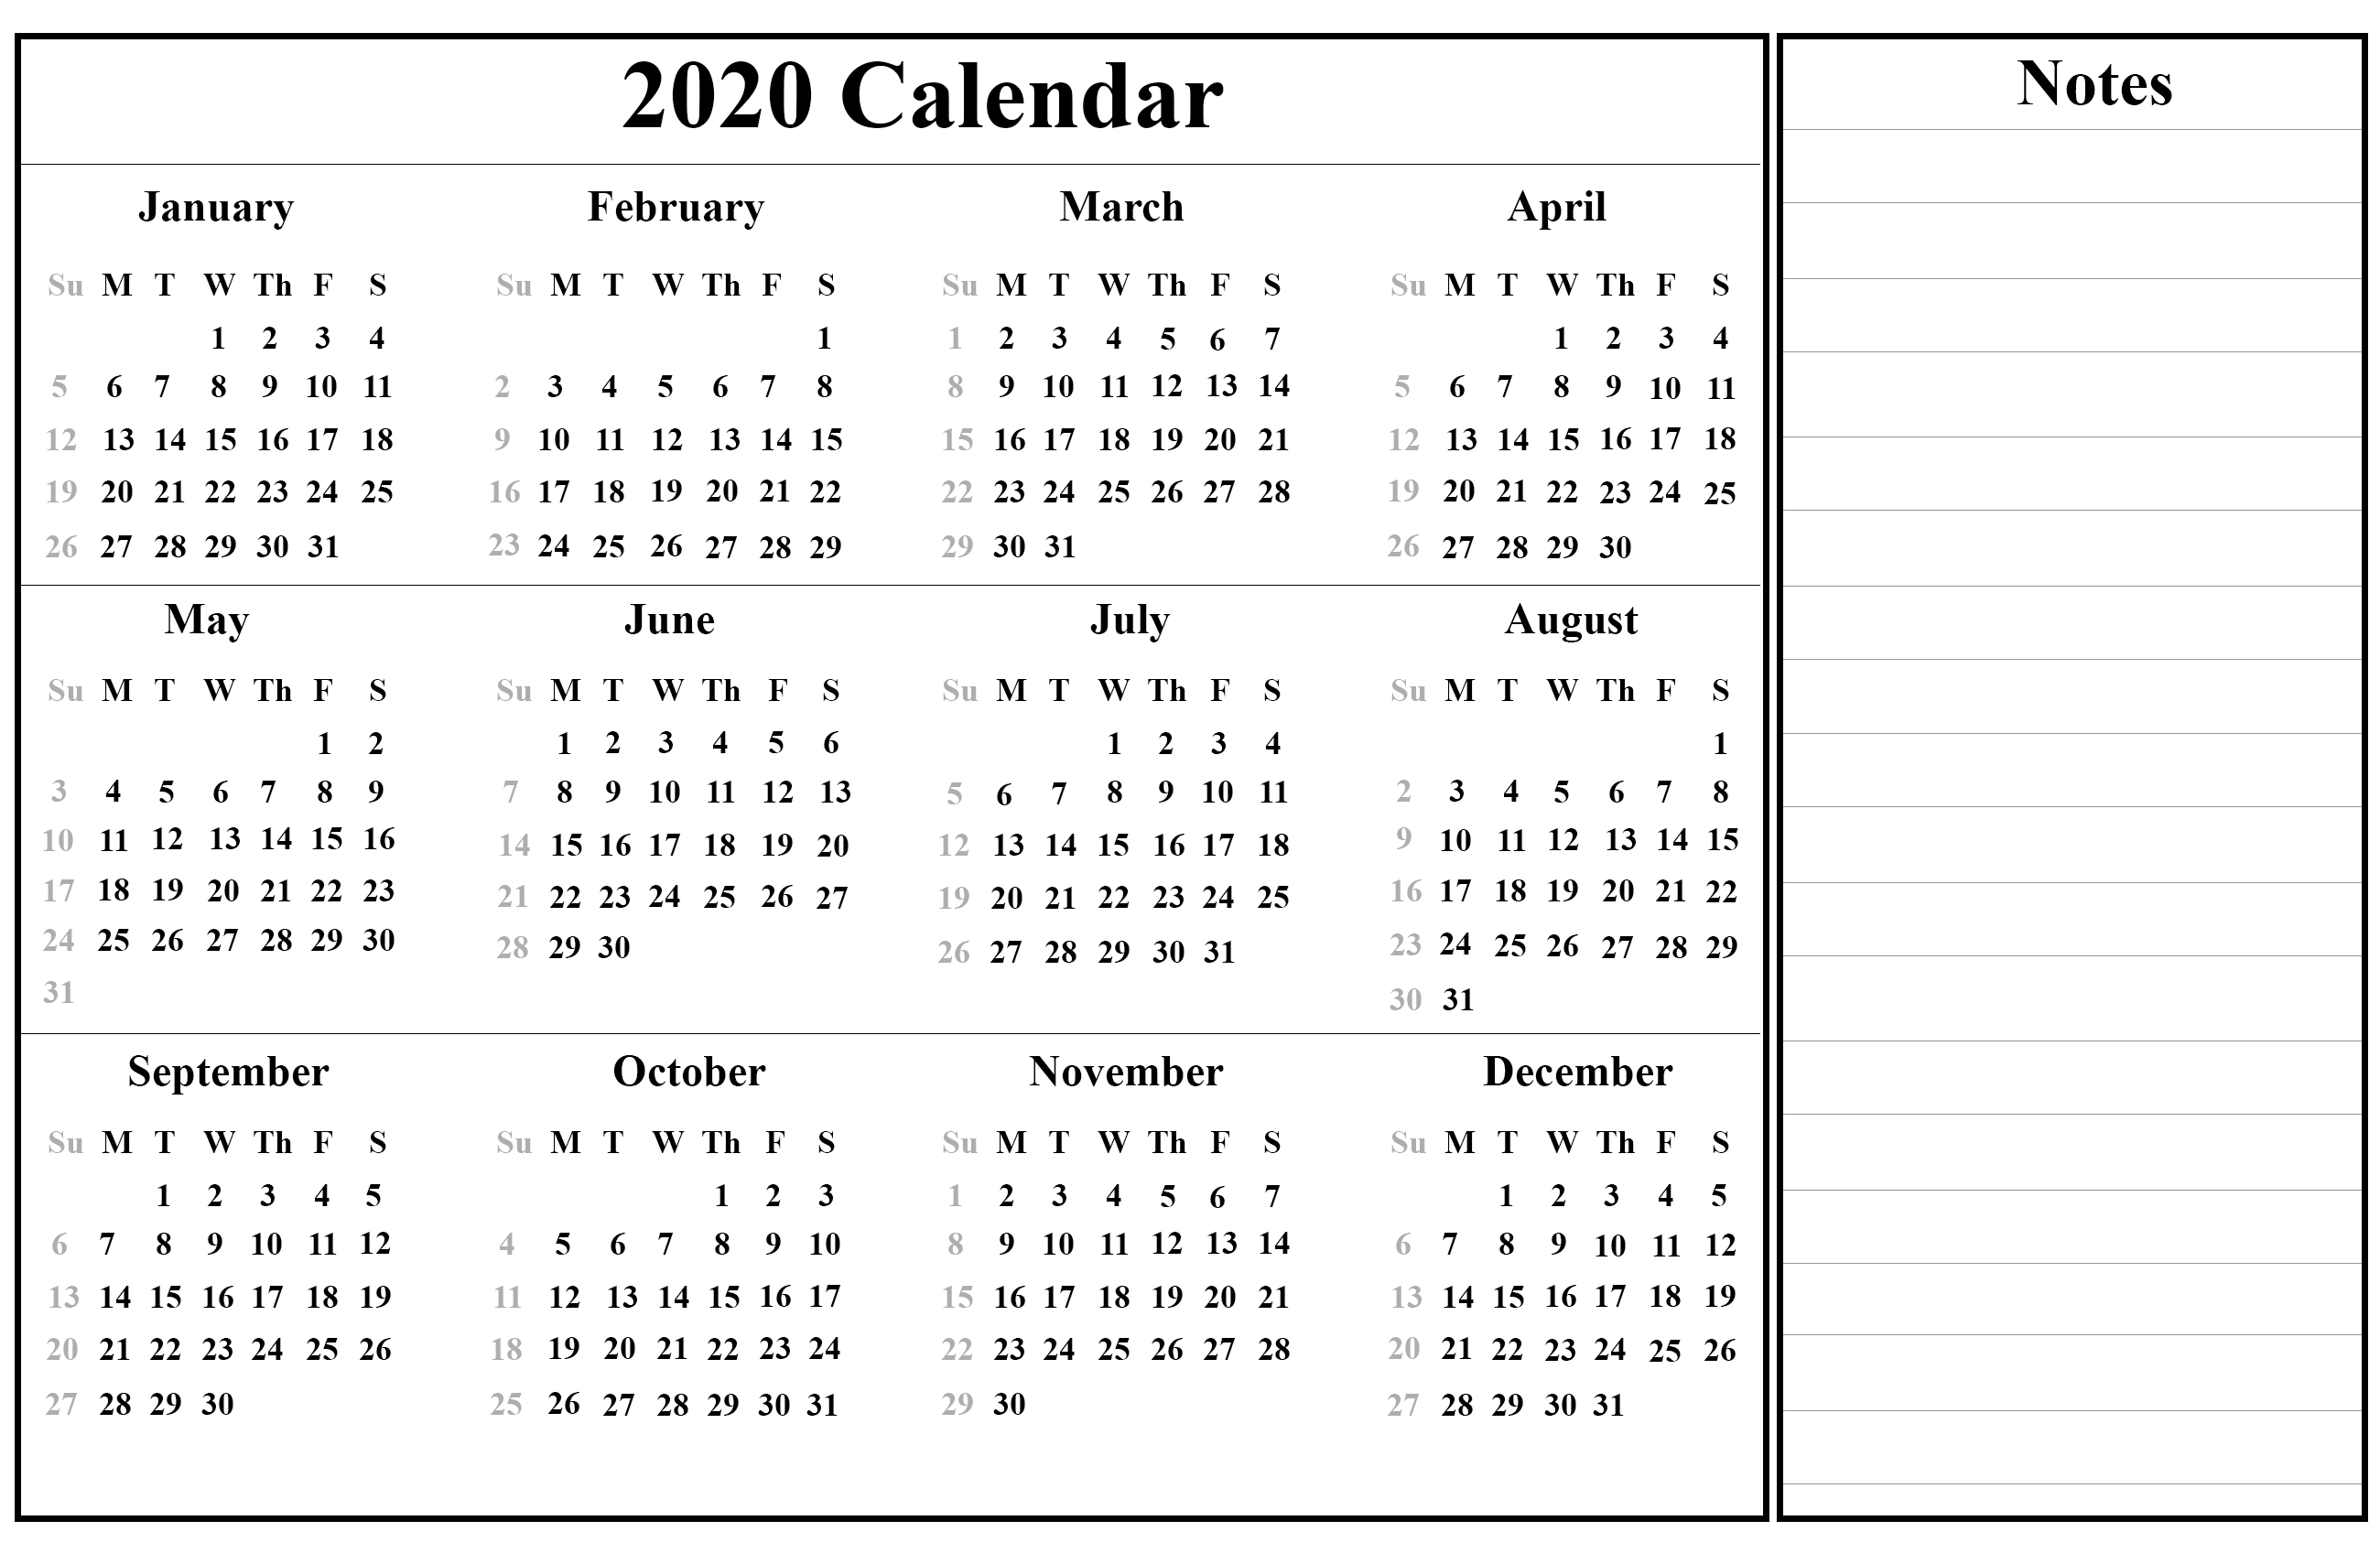 Free Printable Singapore 2020 Calendar With Holidays In Pdf